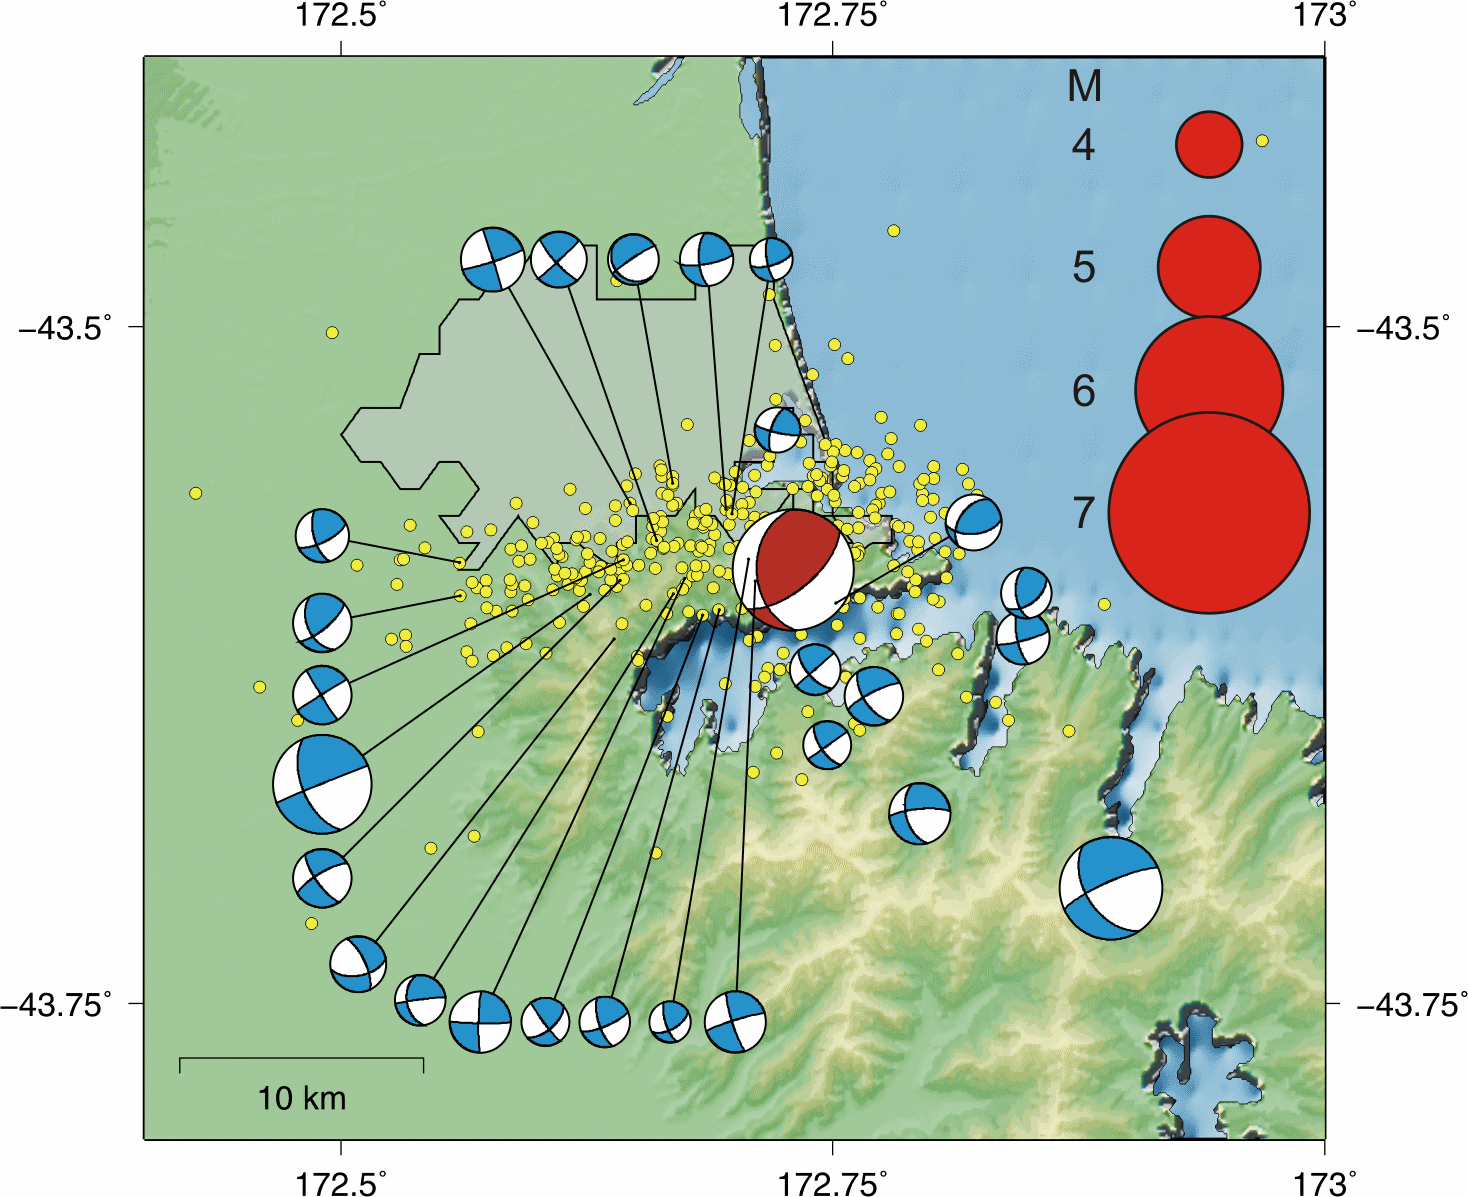 Focal mechanisms for the M6.3 quake (red) and the larger aftershocks (blue) after the first 10 days of the sequence; yellow dots are locations of the other aftershocks. Note that focal mechanisms are offset from the true location for better visibility.